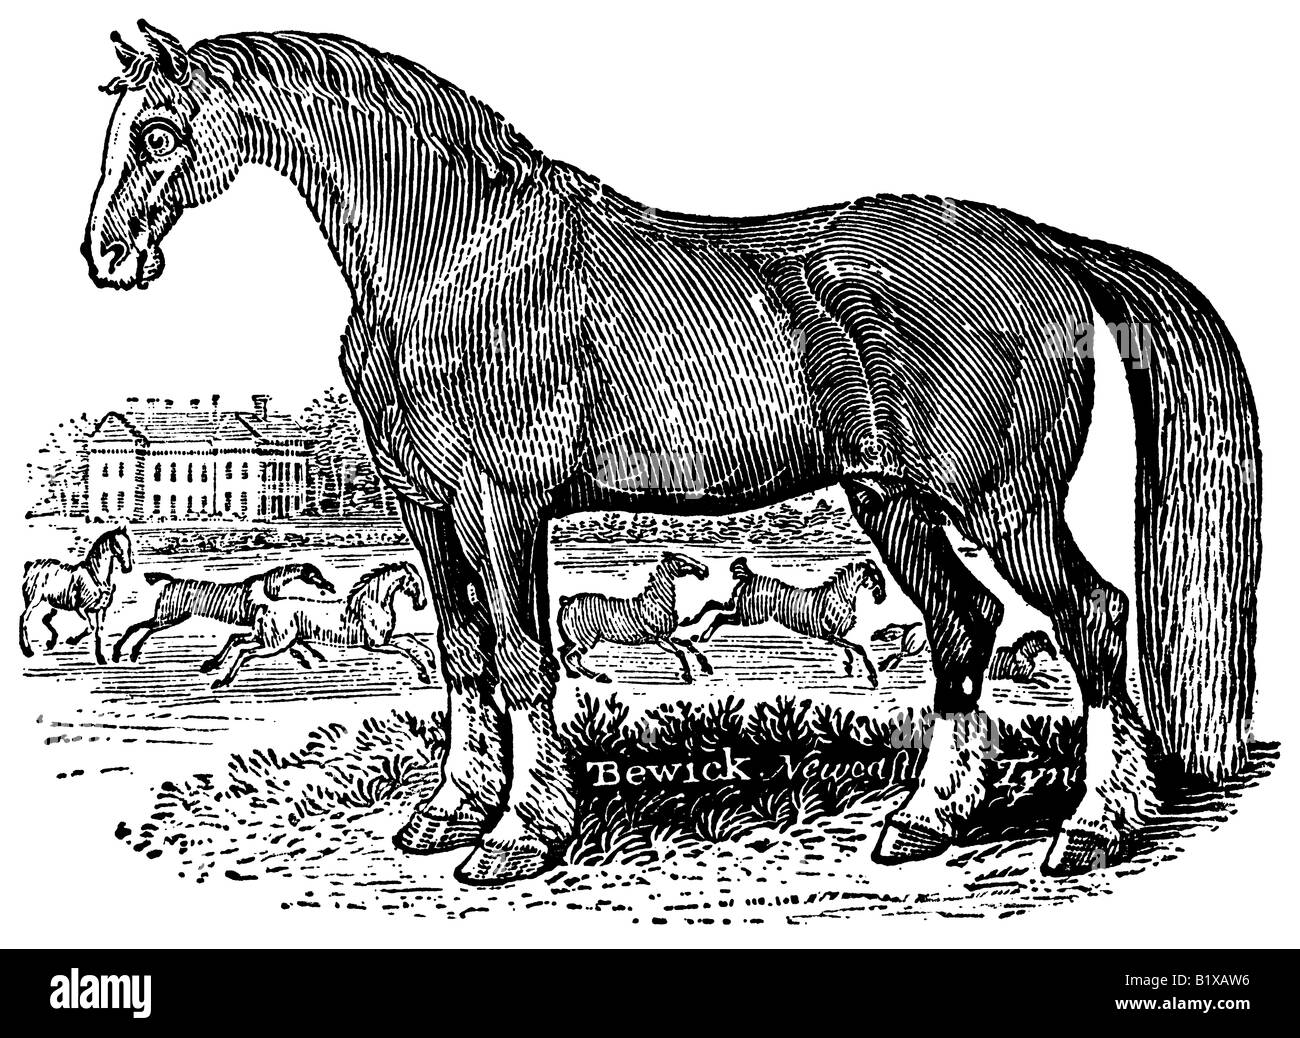 An antique wood-engraving (woodcut) of a horse standing in a field; it was made by Thomas Bewick in (or before) - Stock Image